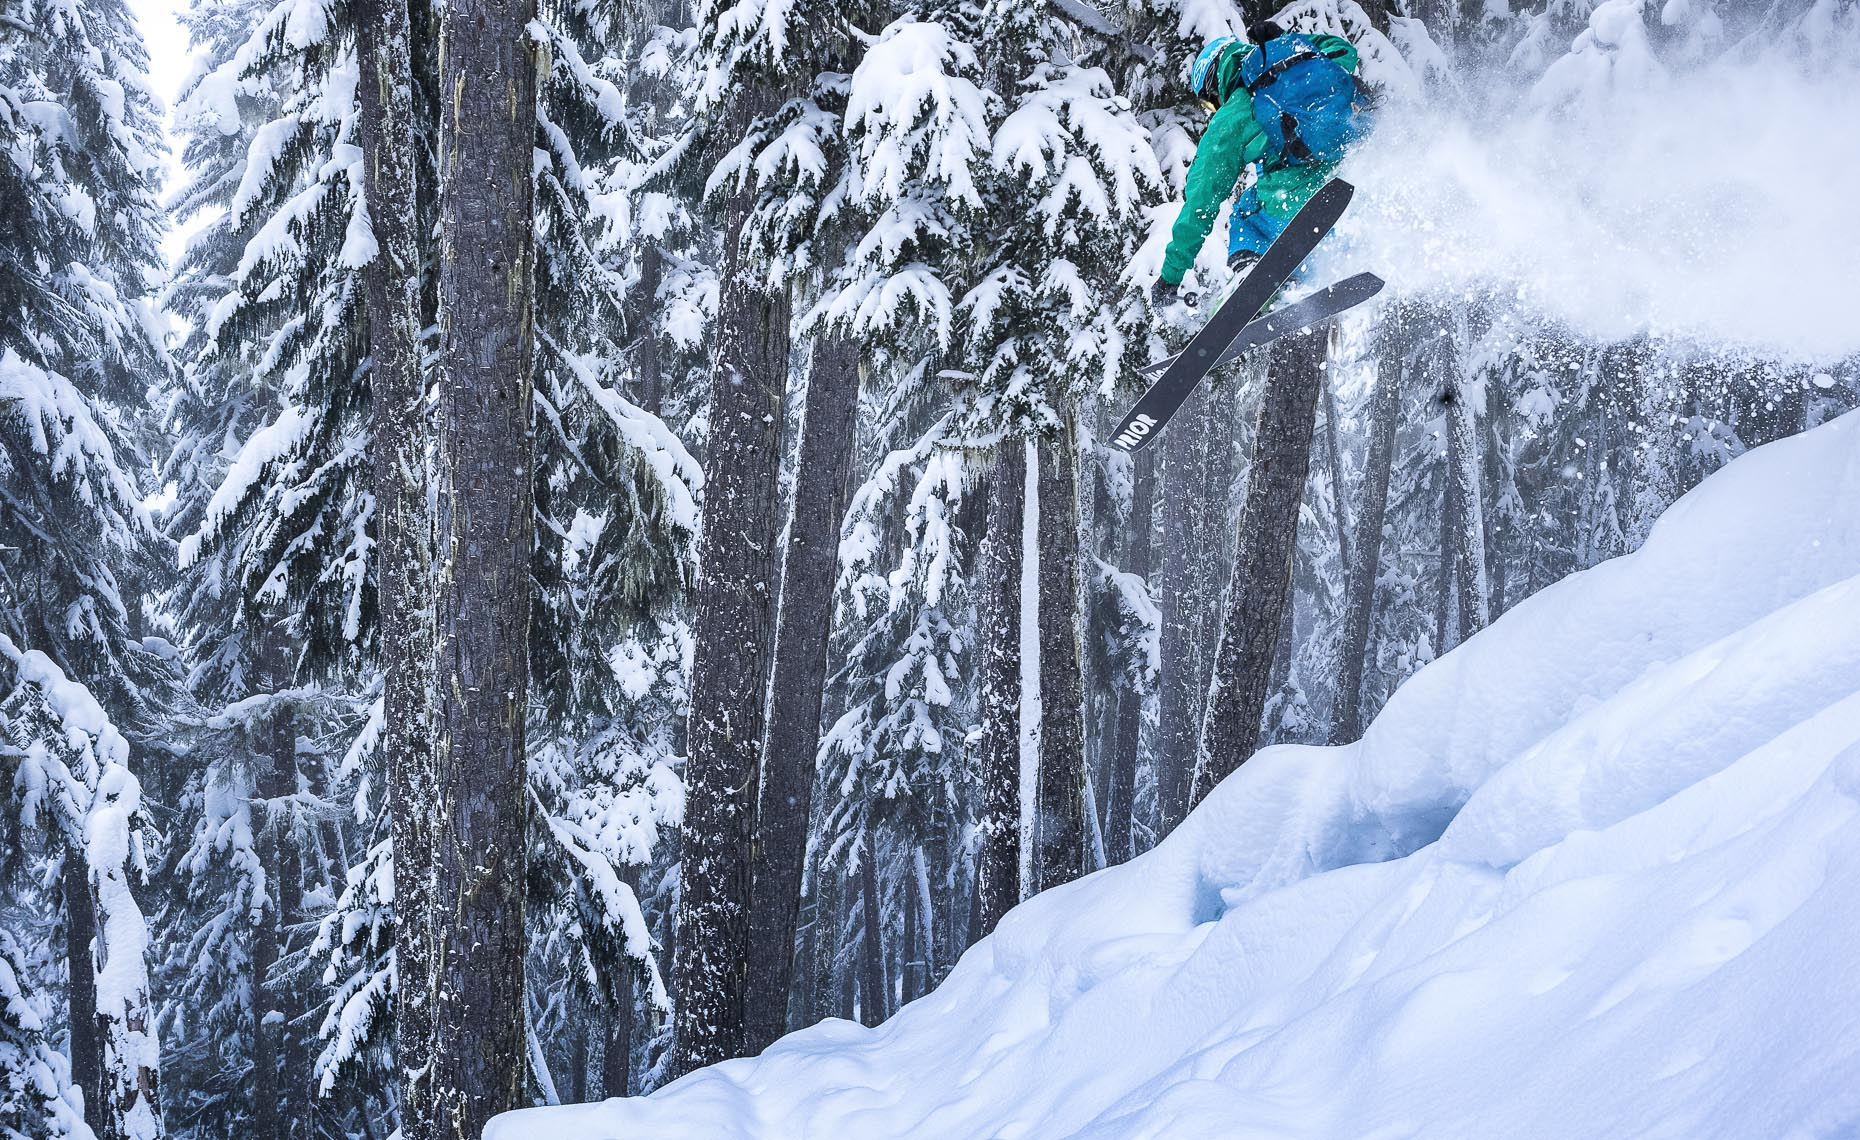 Ski jump action in the forest on whistler mountain